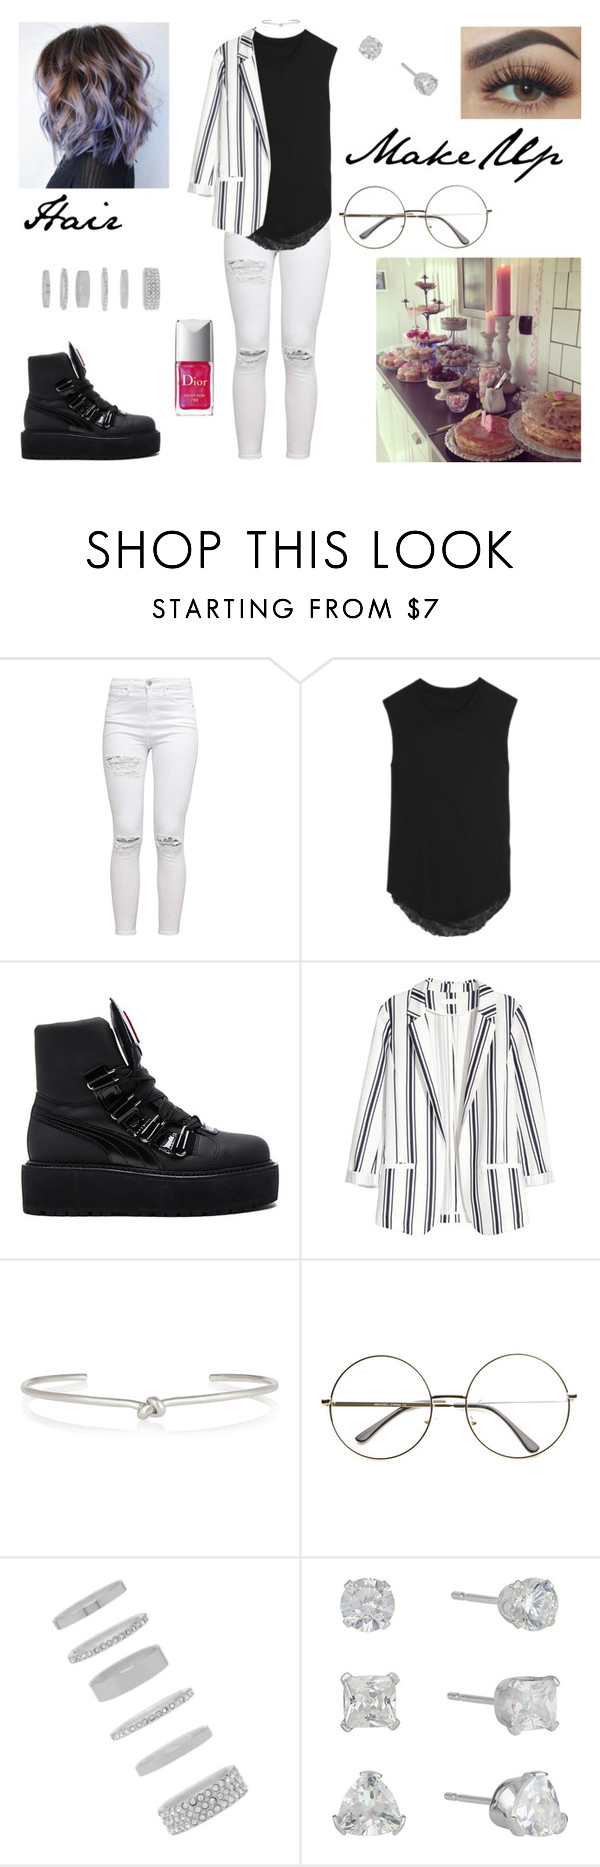 """My best friend's Birthday!"" by milena-serranista ❤ liked on Polyvore featuring Raquel Allegra, Puma, H&M, Jennifer Fisher, Forever 21 and Christian Dior"